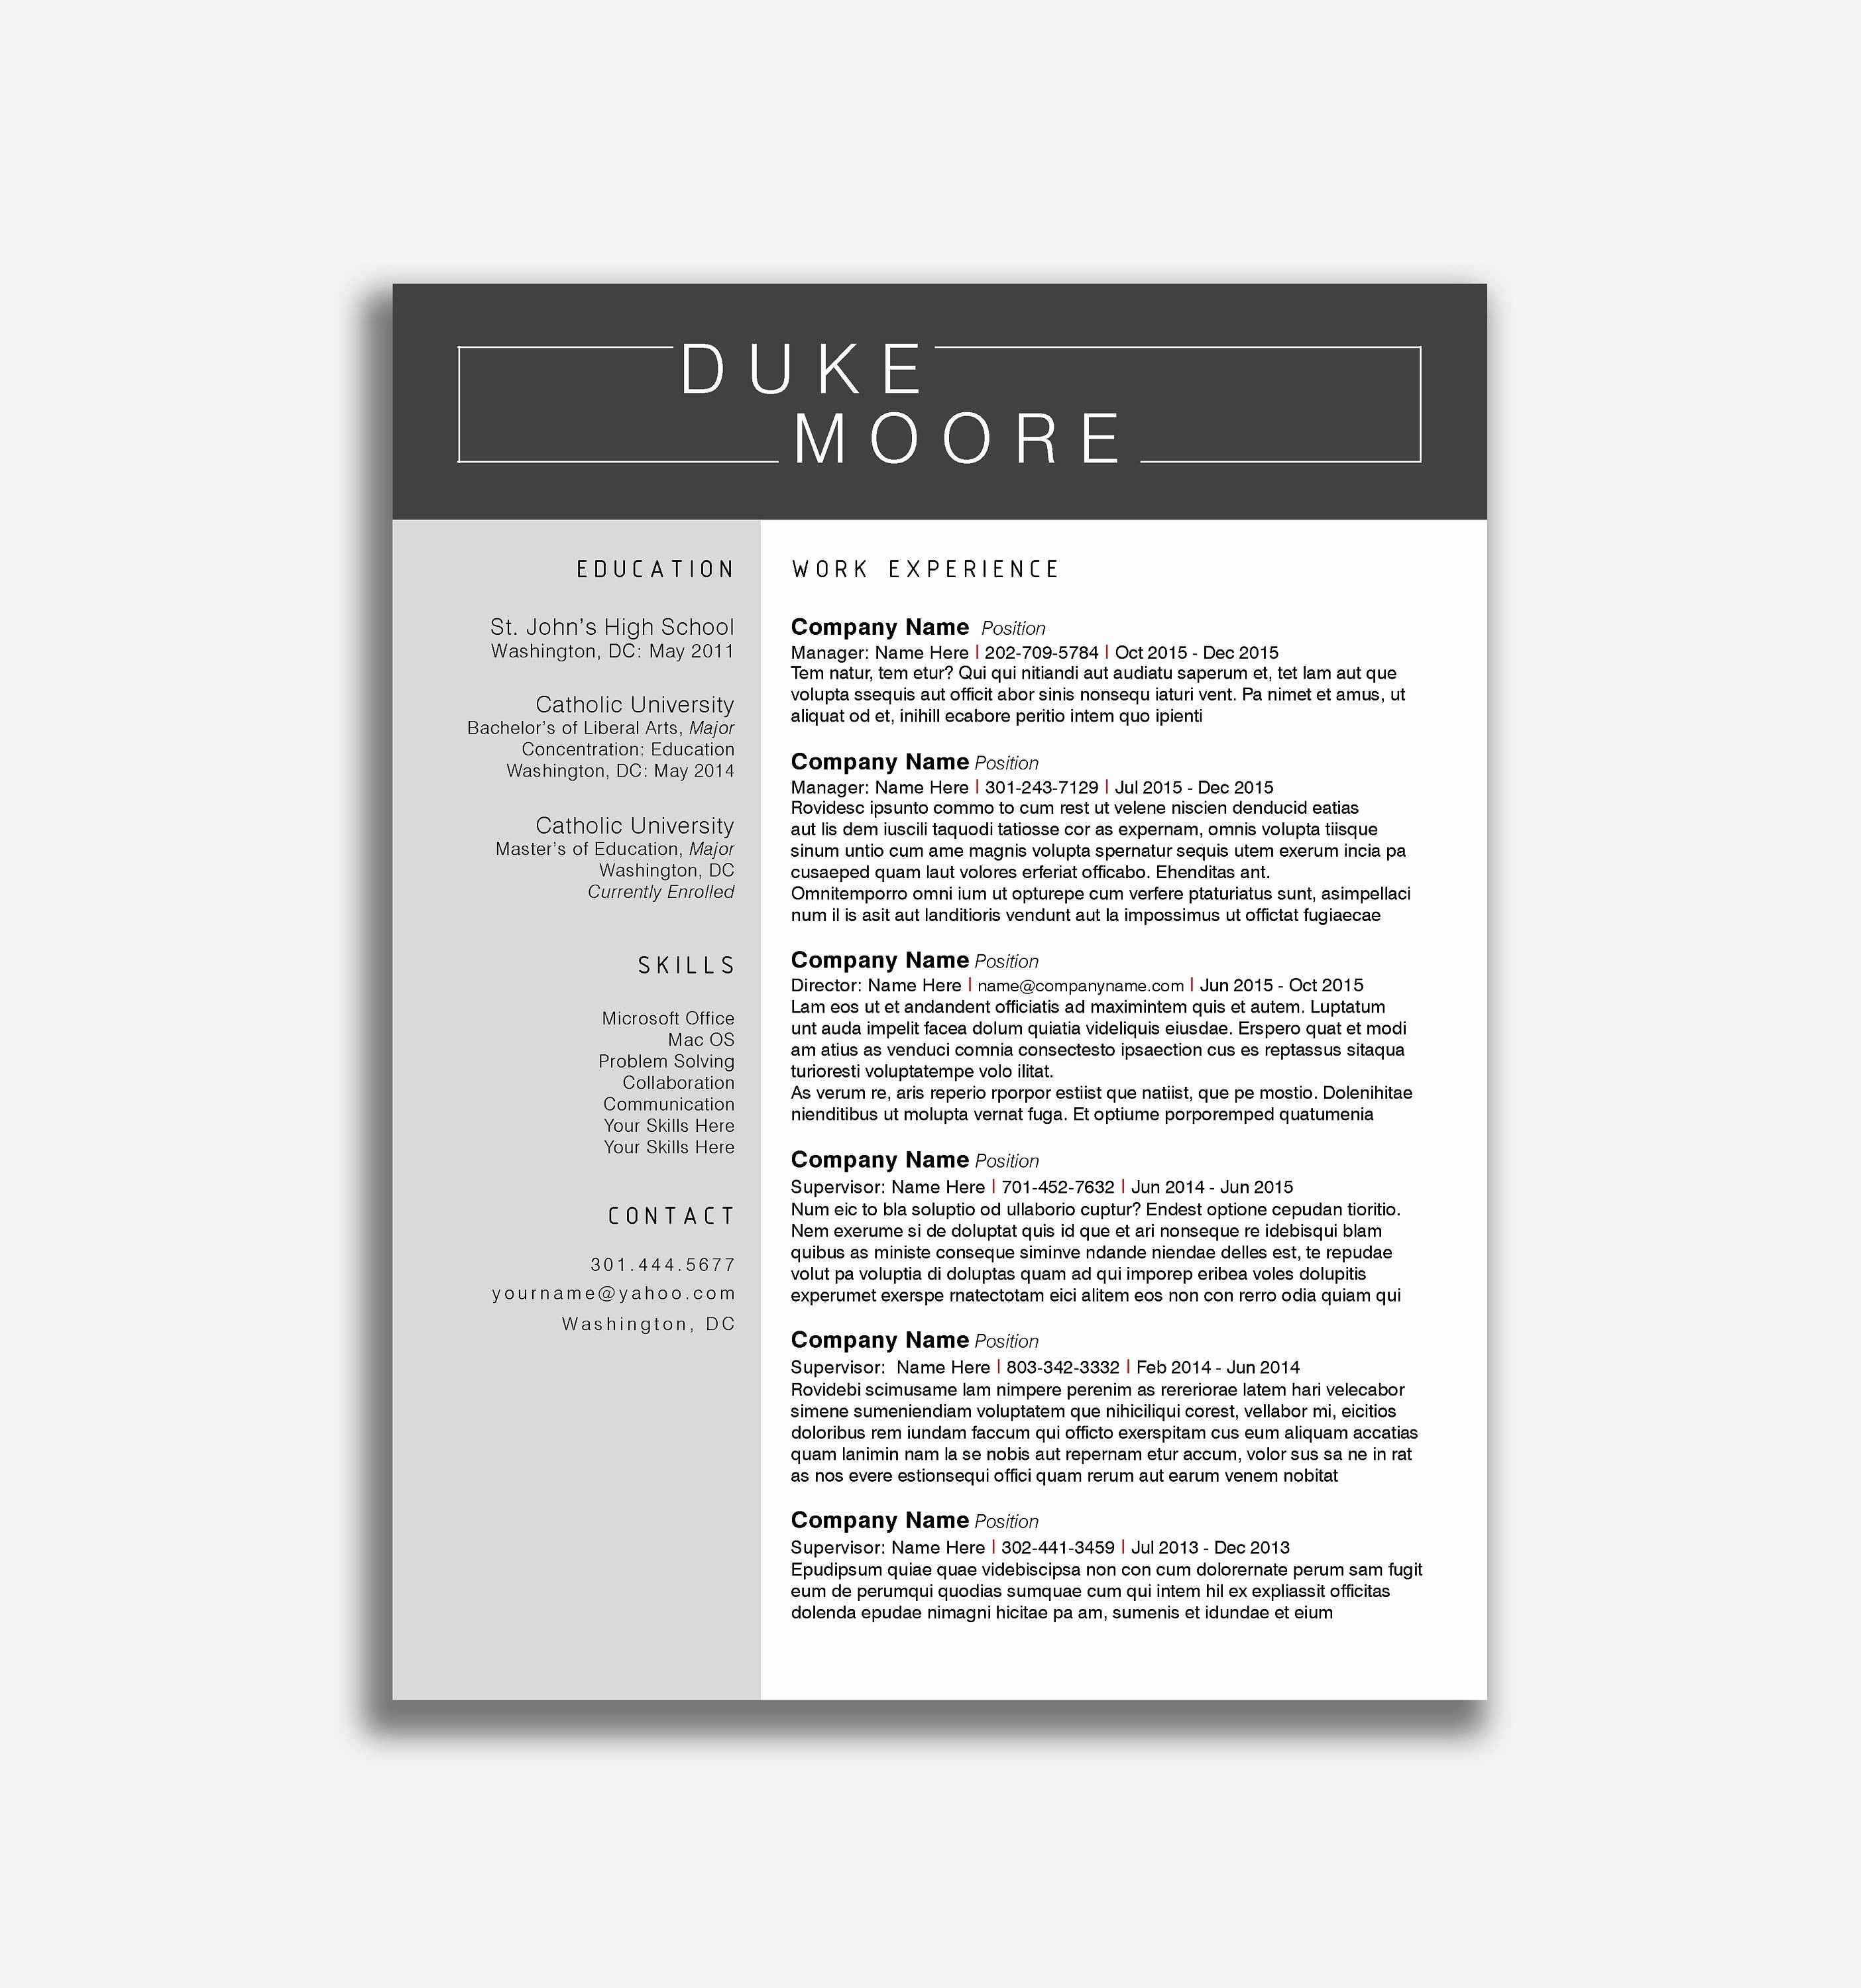 Free Resume Templates for Mac - Free Resume Template Download for Mac New Free Resume Templates for